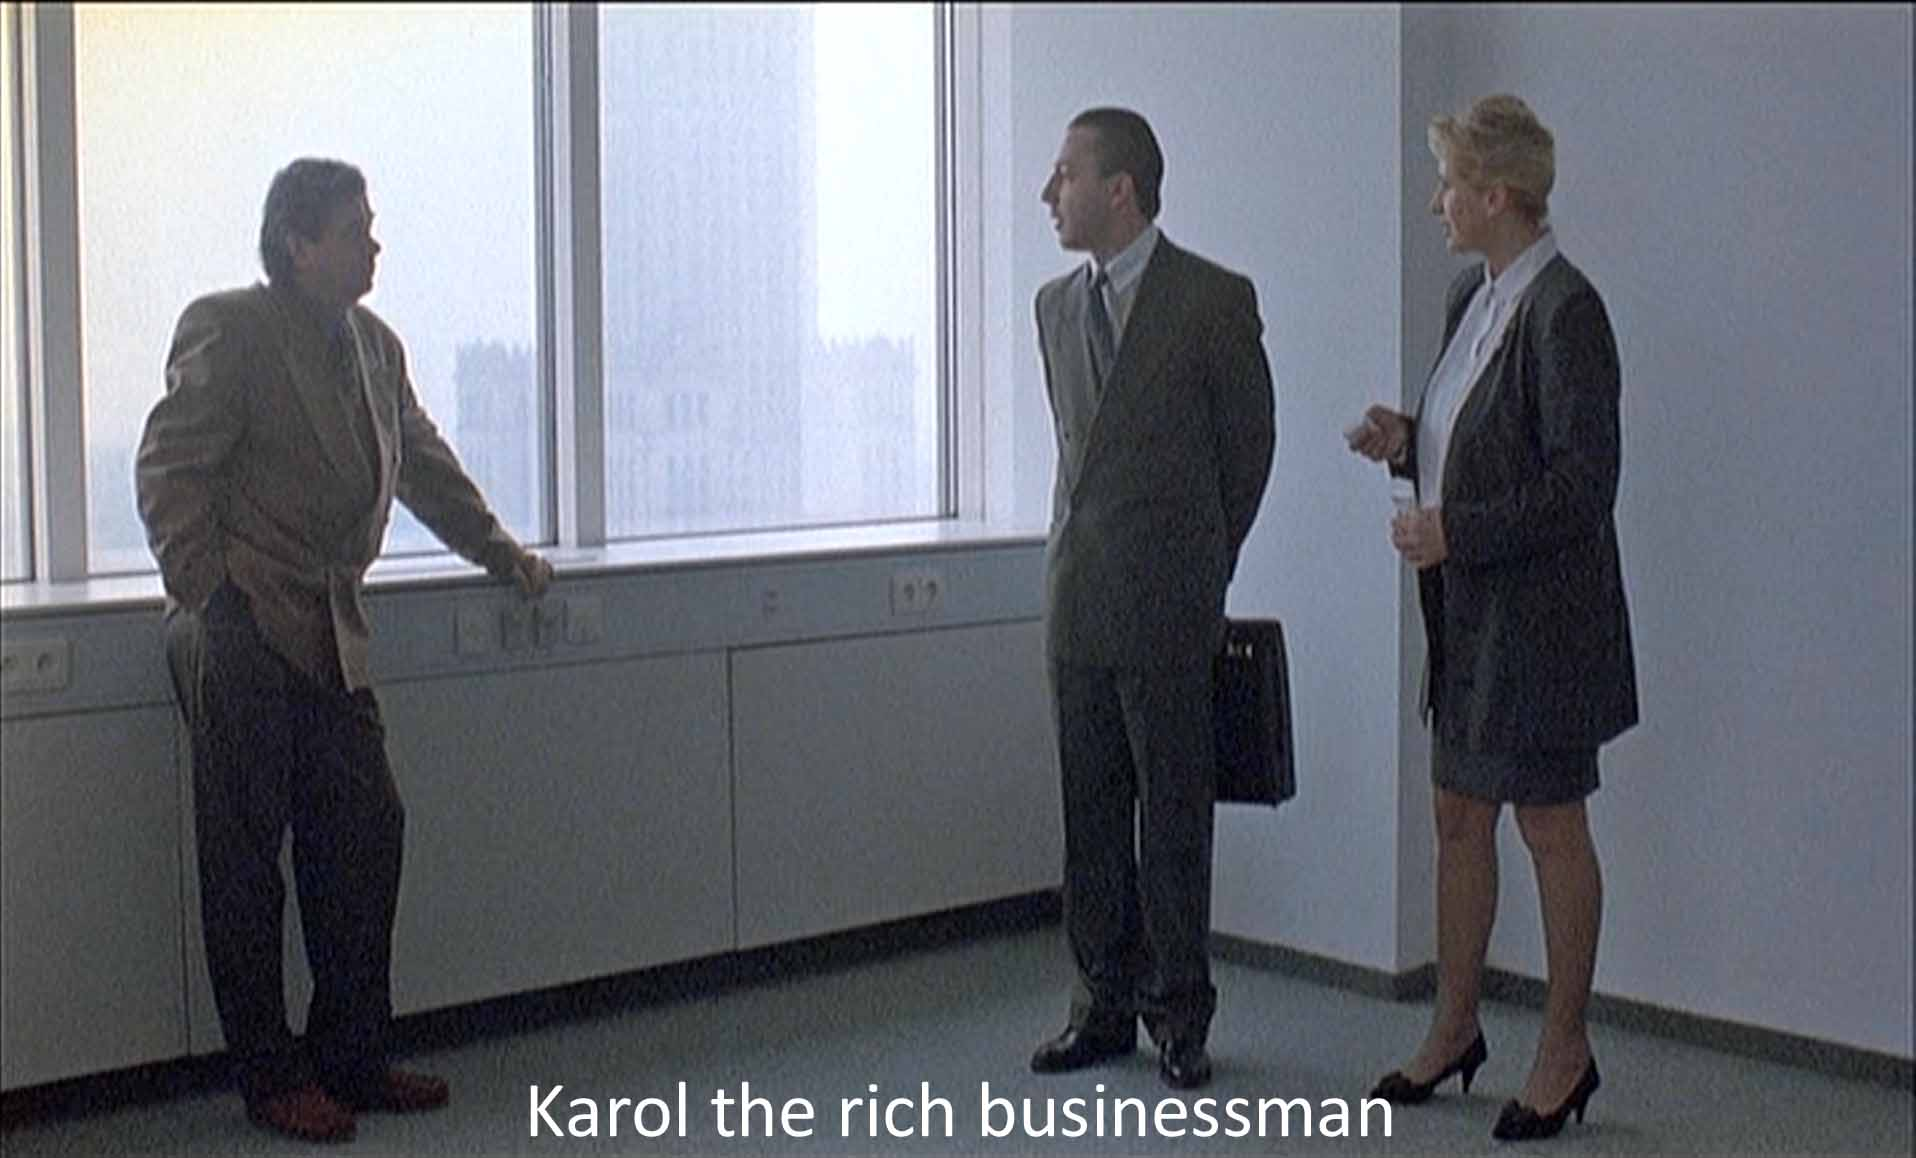 Karol the rich businessman